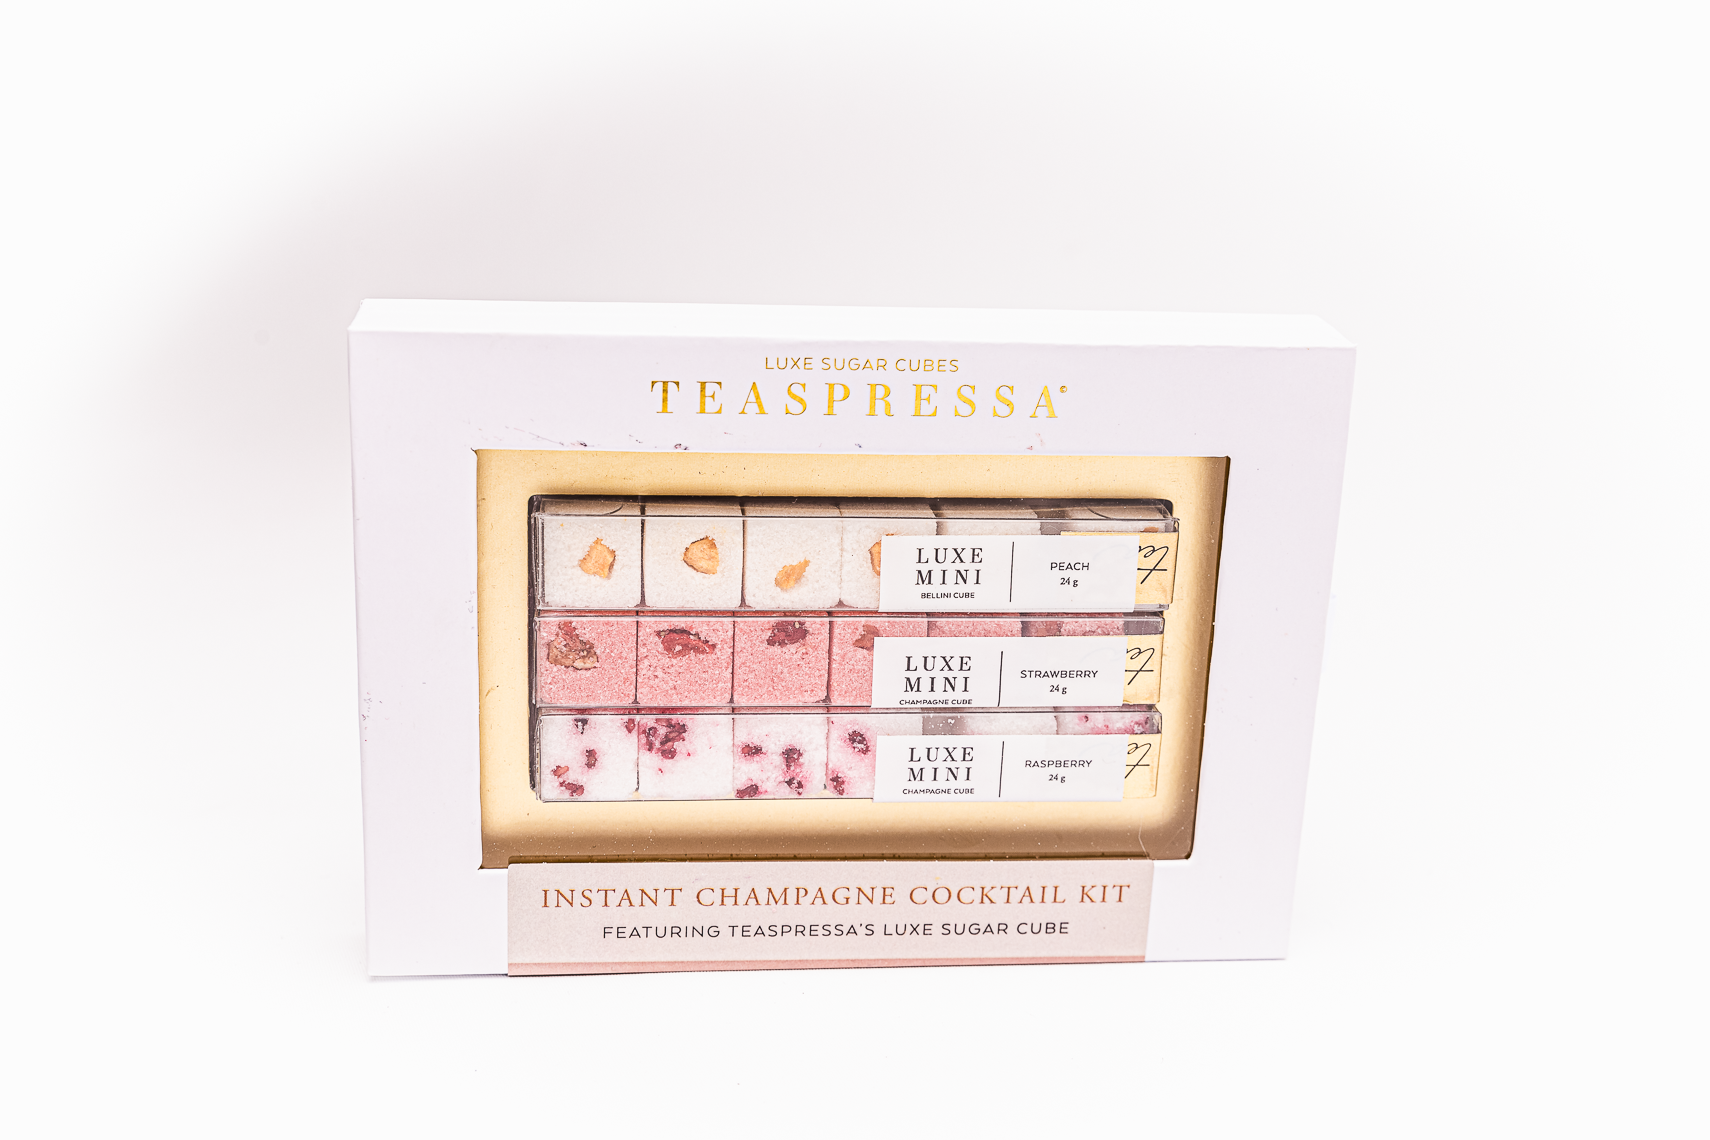 Teaspressa Signature Cocktail Kit MAIN